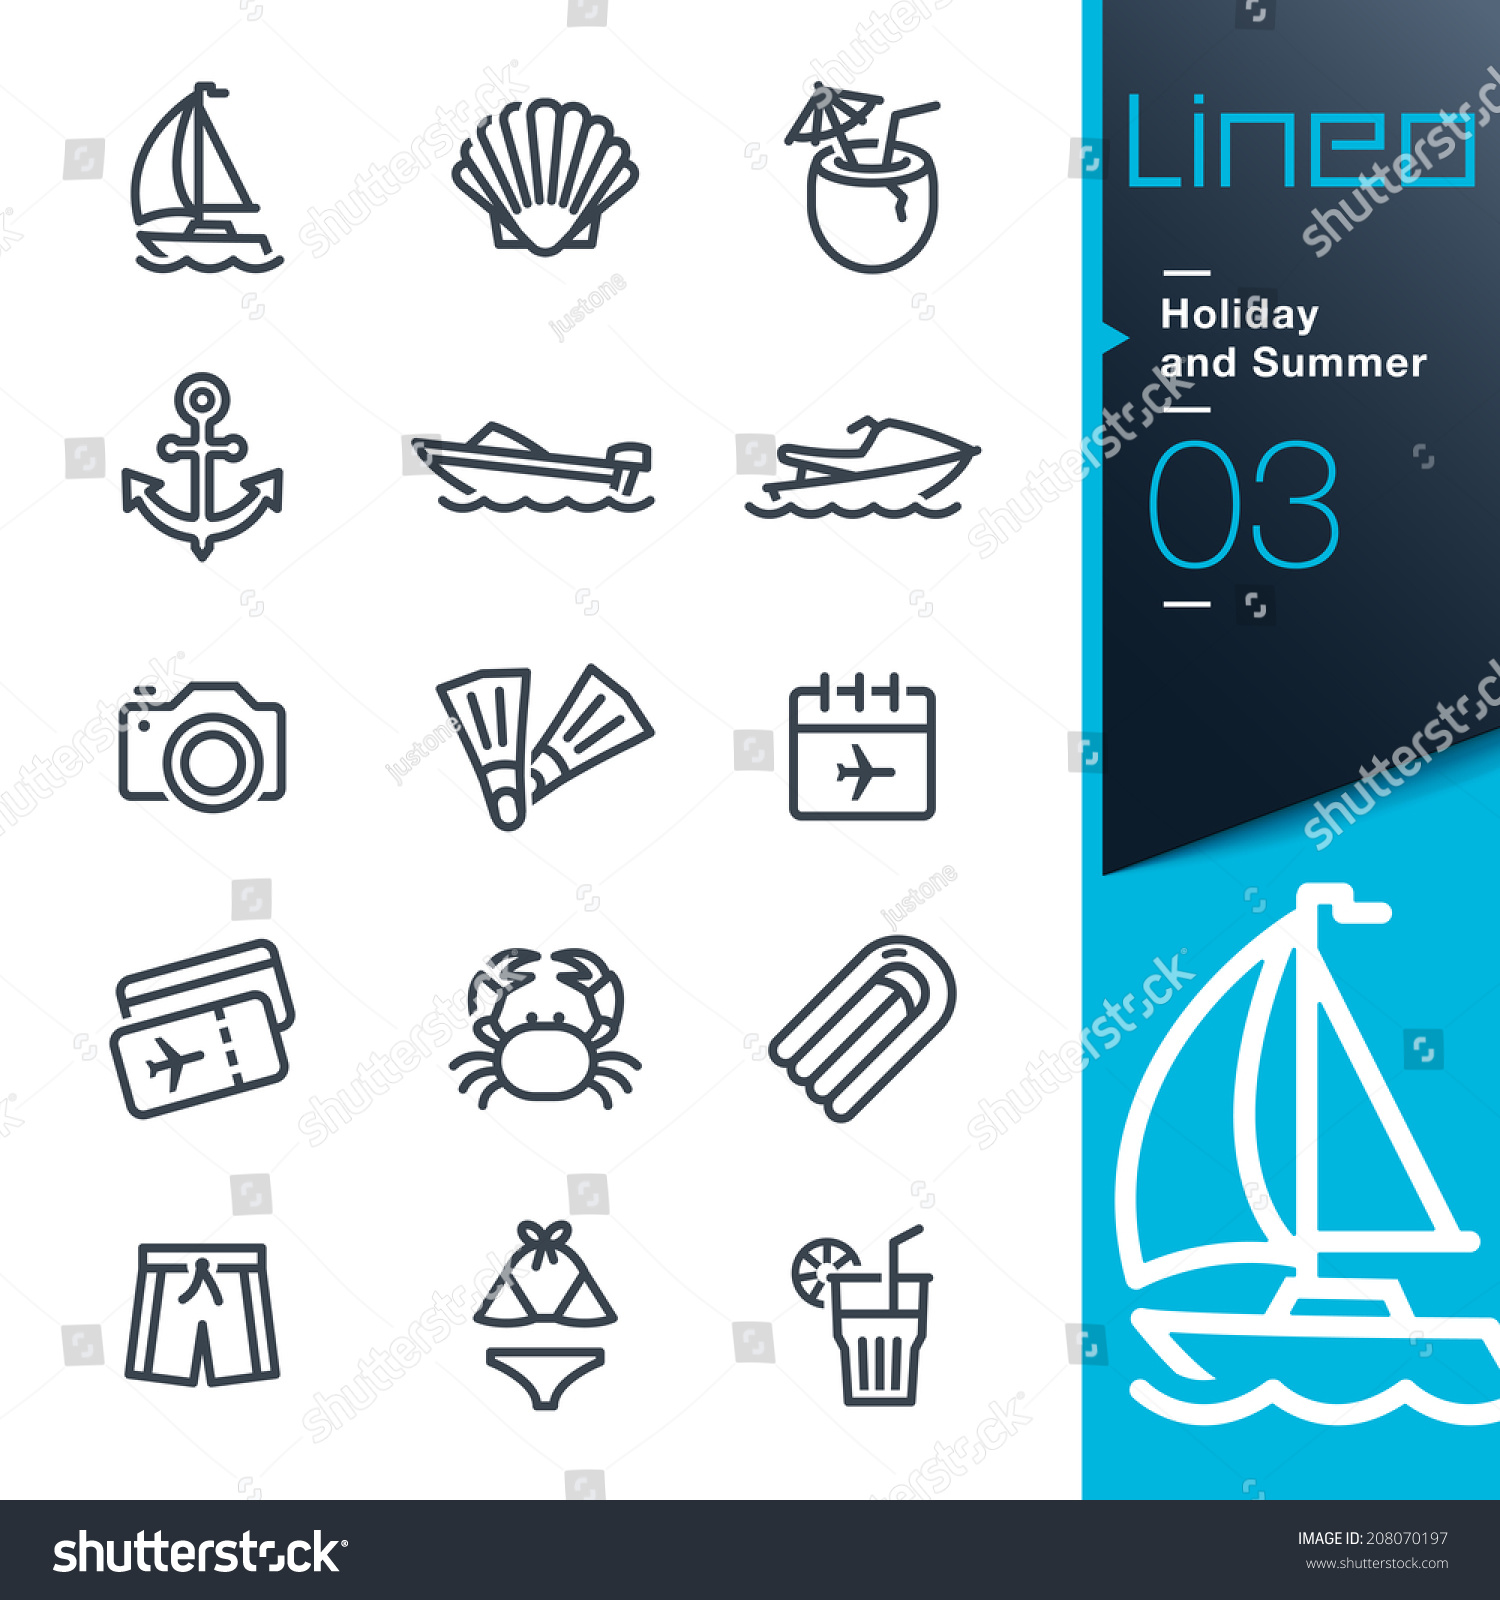 Lineo Holiday and Summer outline icons